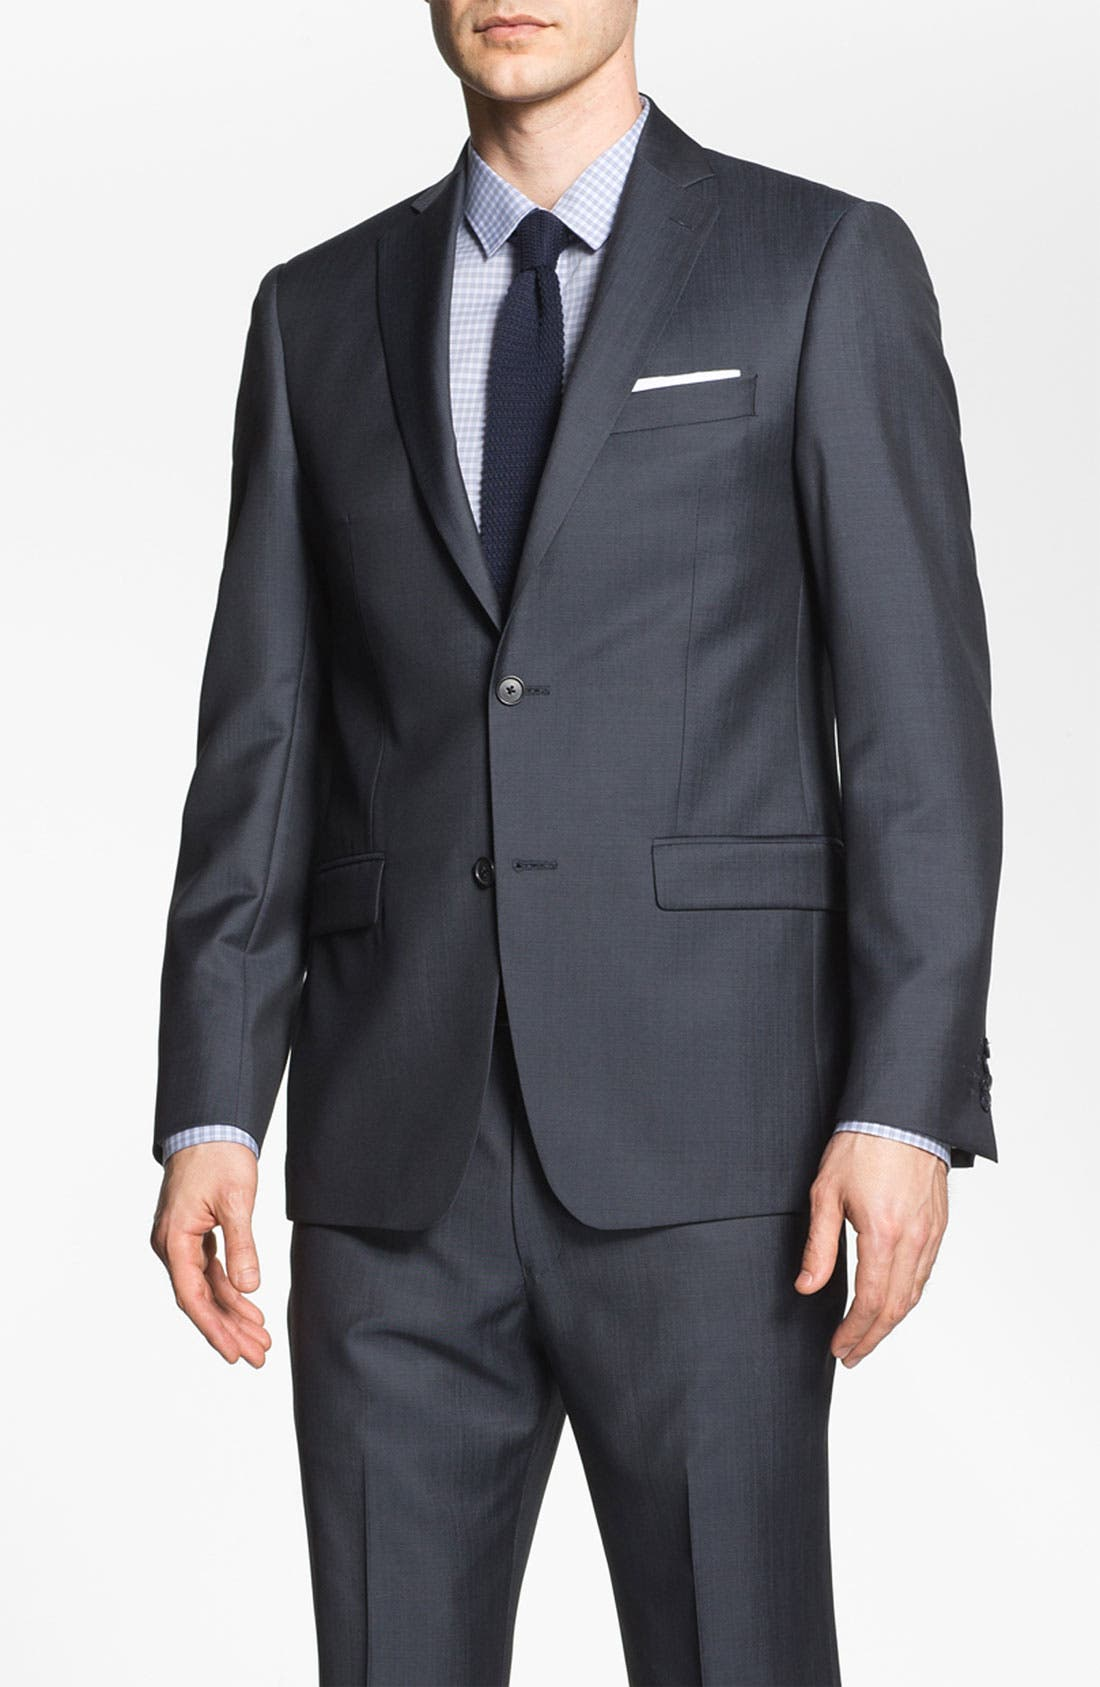 Alternate Image 1 Selected - Michael Kors Trim Fit Twill Suit